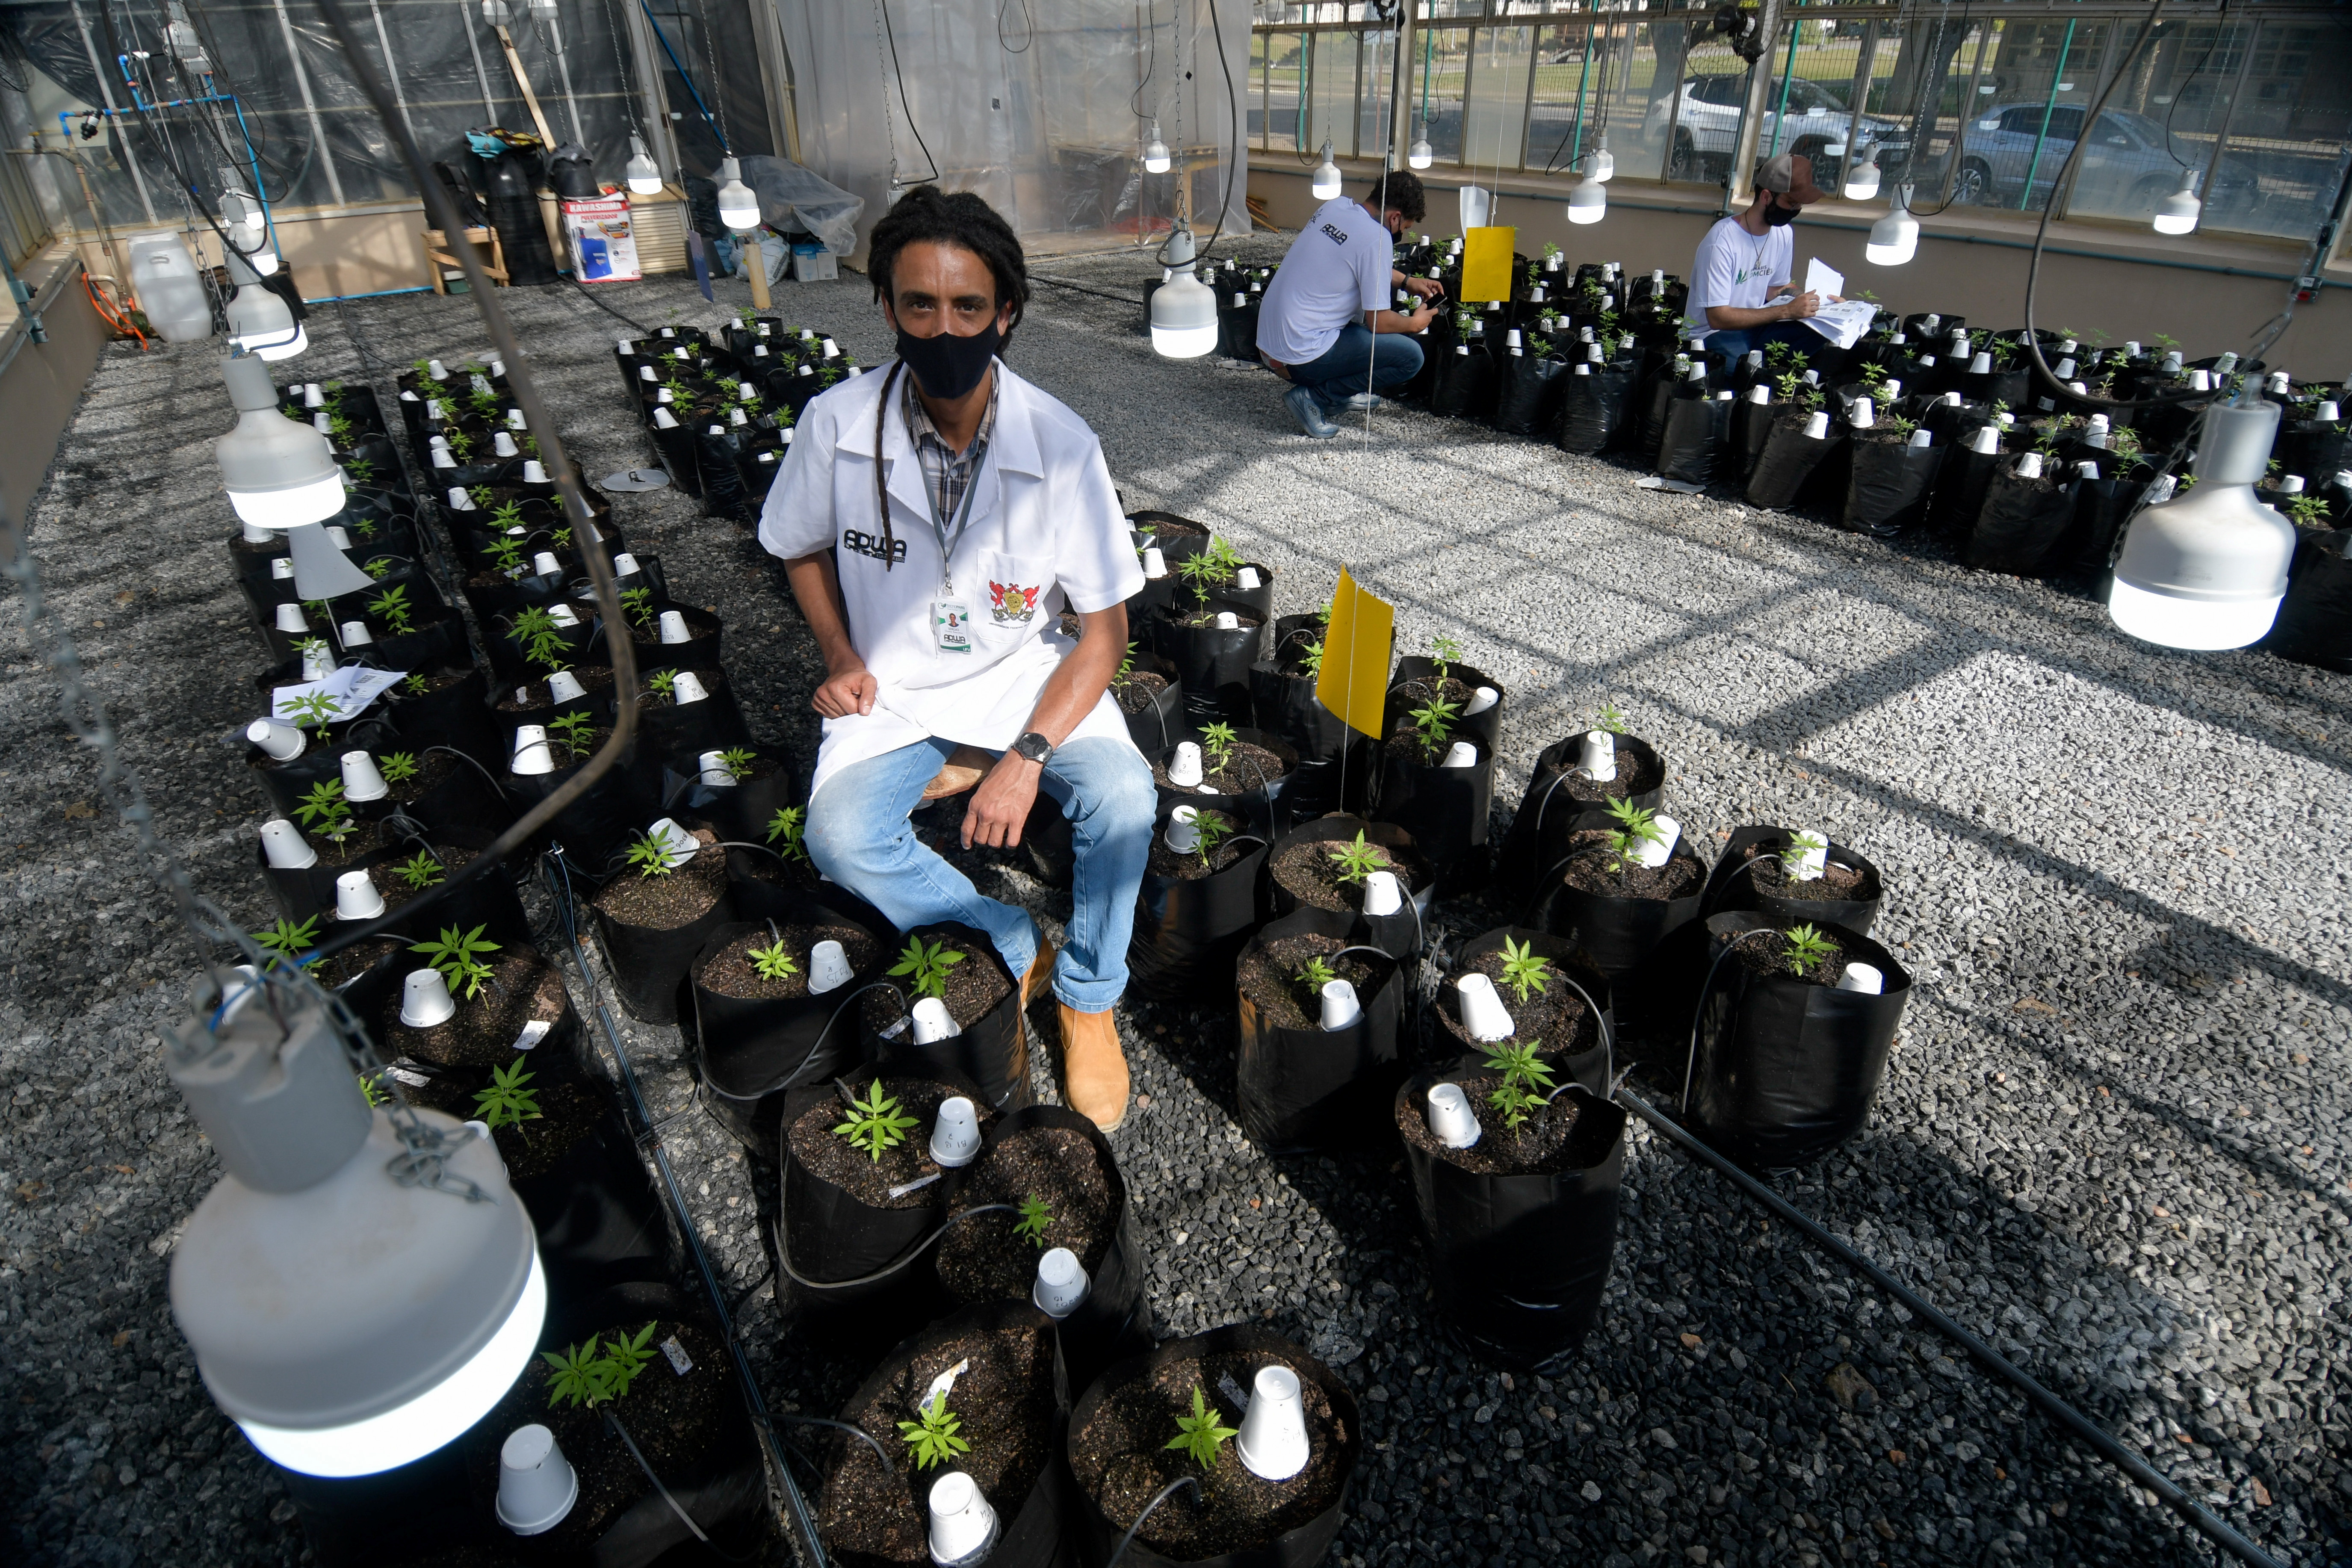 Agronomist Engineer Sergio Rocha, 36, Executive Director of the cannabis cultivation for research and cultivation project, poses for a picture in a greenhouse at the Federal University of Vicosa, Minas Gerais state, Brazil, August 18, 2021. Picture taken August 18, 2021. REUTERS/Washington Alves